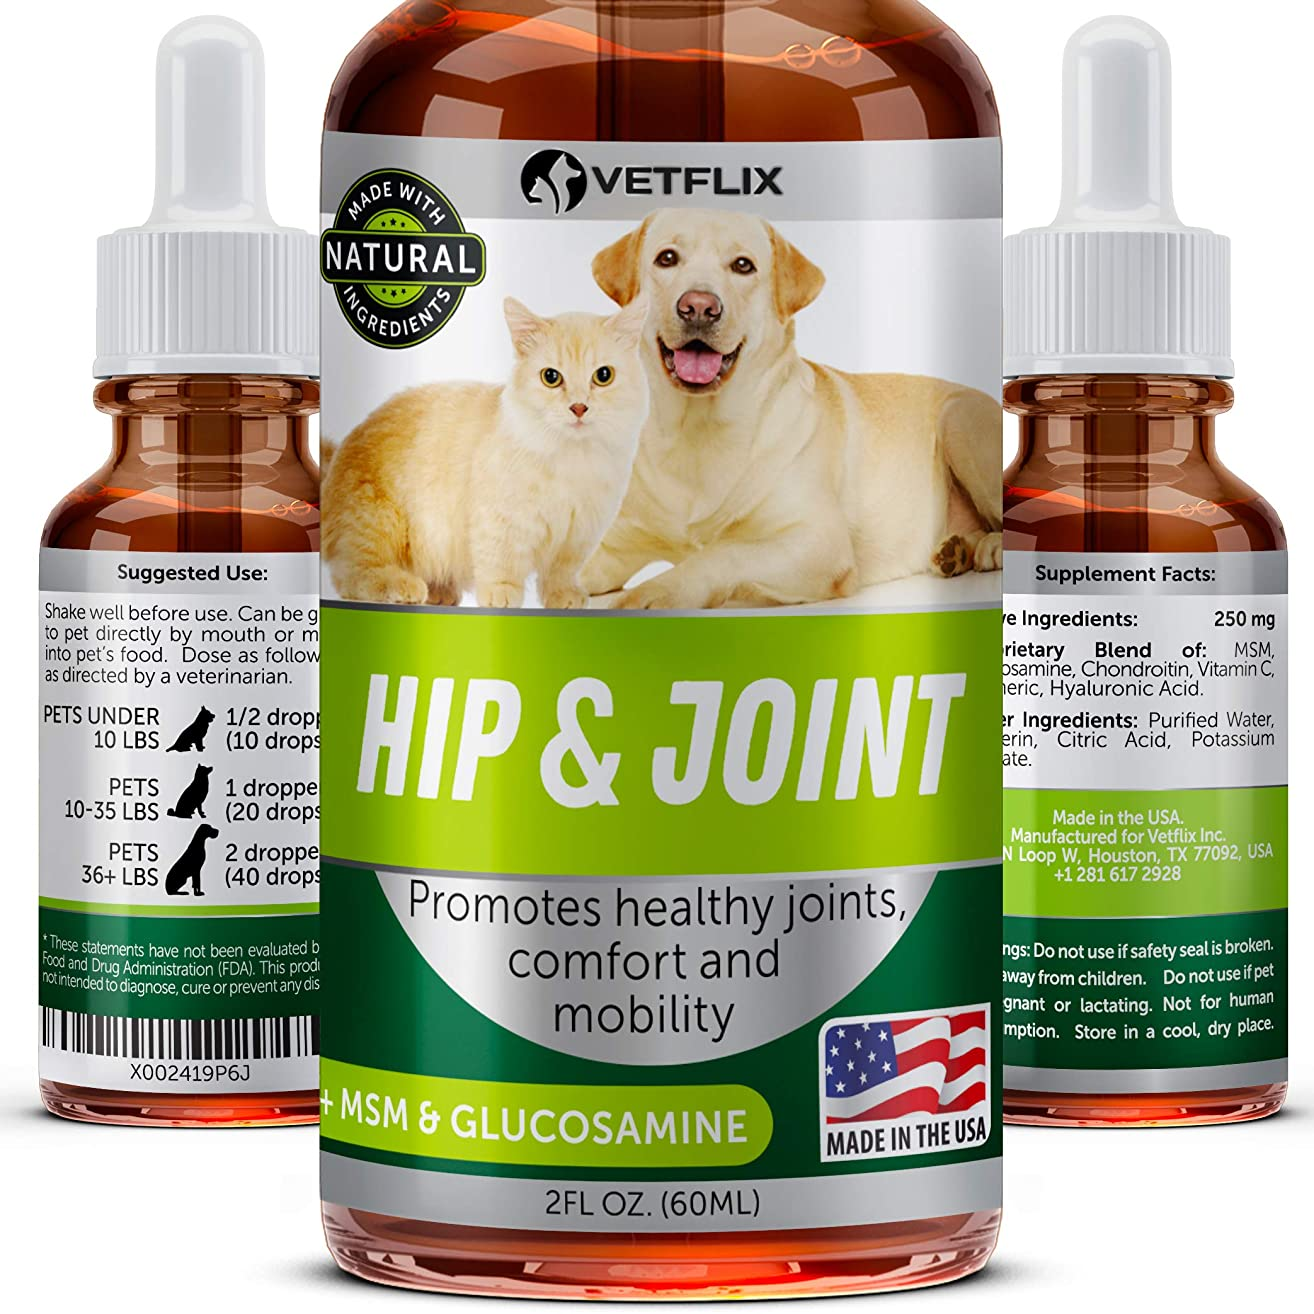 Glucosamine for Dogs & Cats - Made in USA - Premium Hip & Joint Supplement for Dogs & Cats - Improves Mobility & Flexibility - Dog Arthritis Pain Relief - 100% Natural - MSM, Chondroitin, Vitamin C